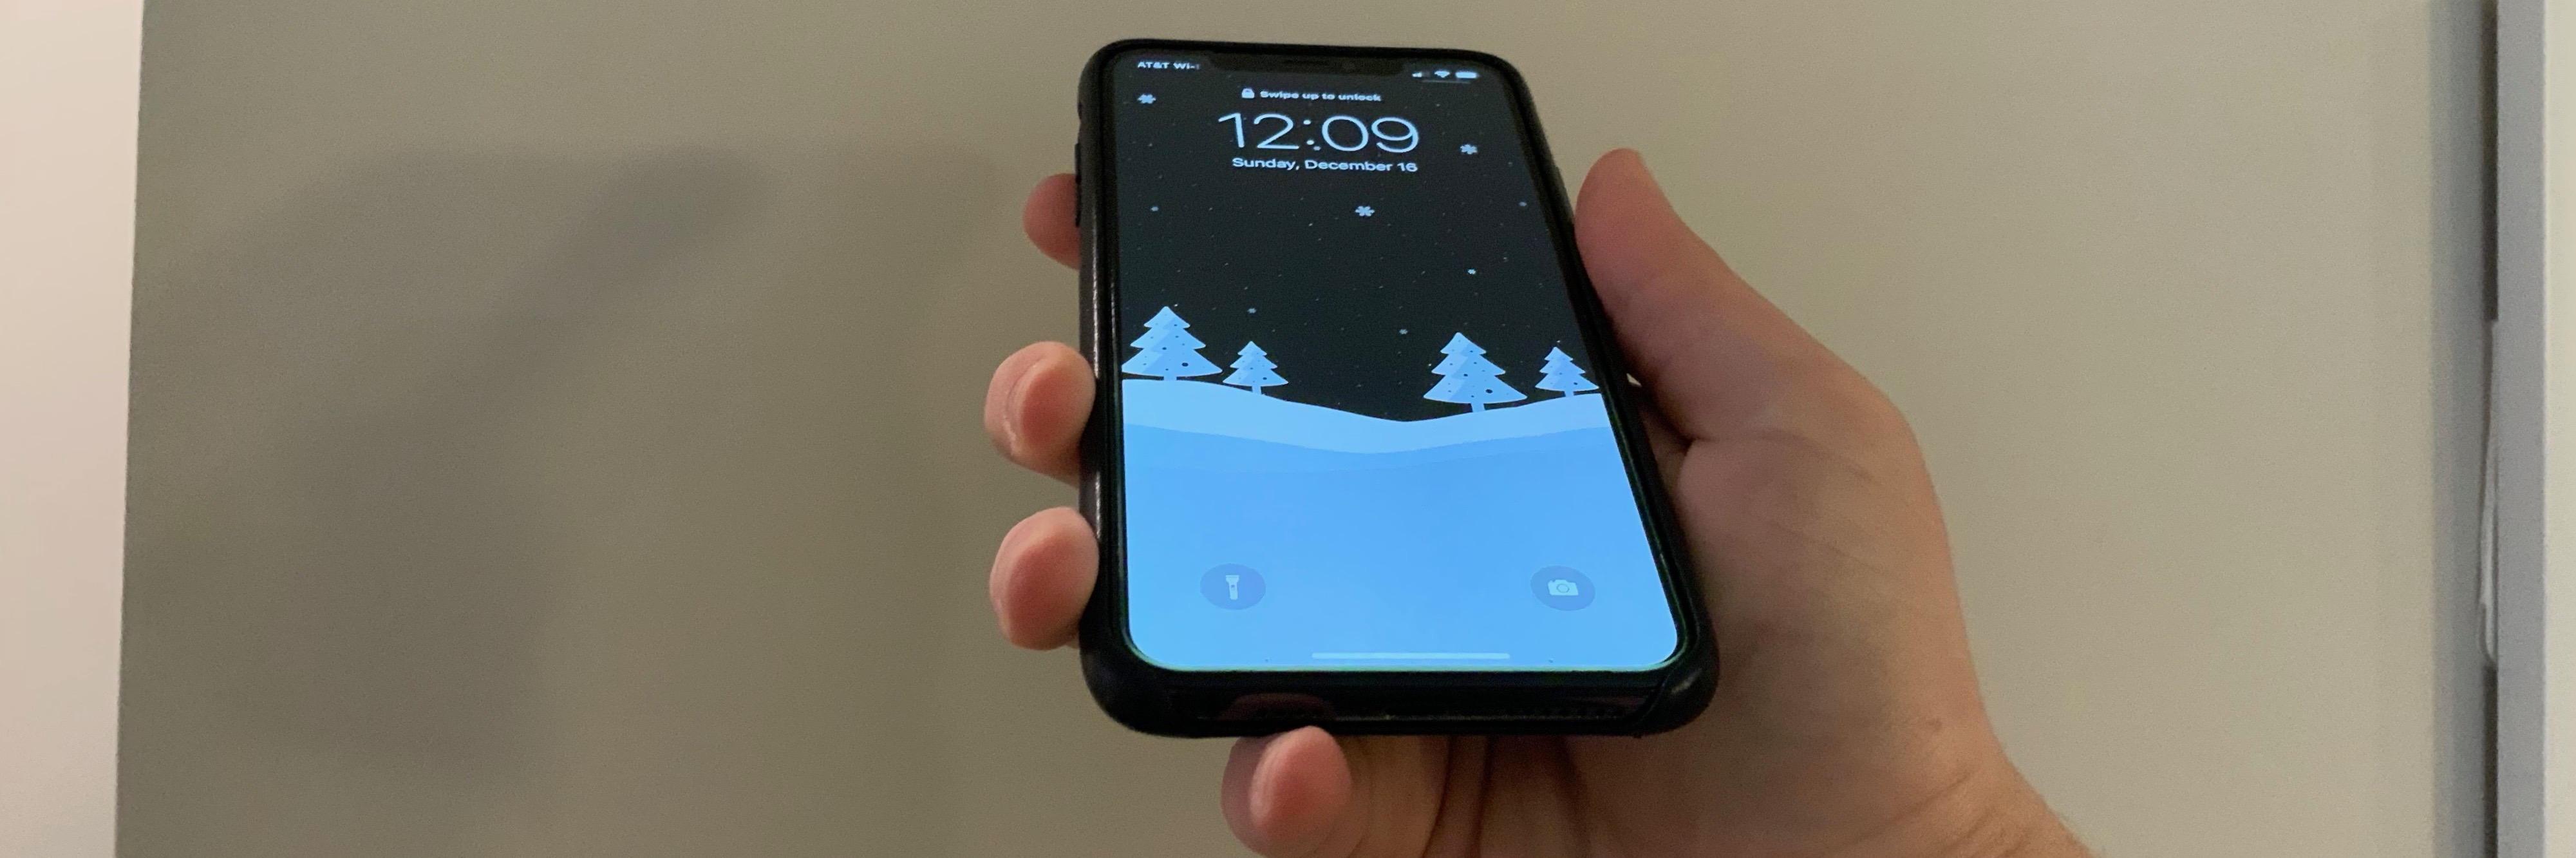 Review: Whitestone Dome Glass for iPhone XS is a great screen protector w/ a unique installation process